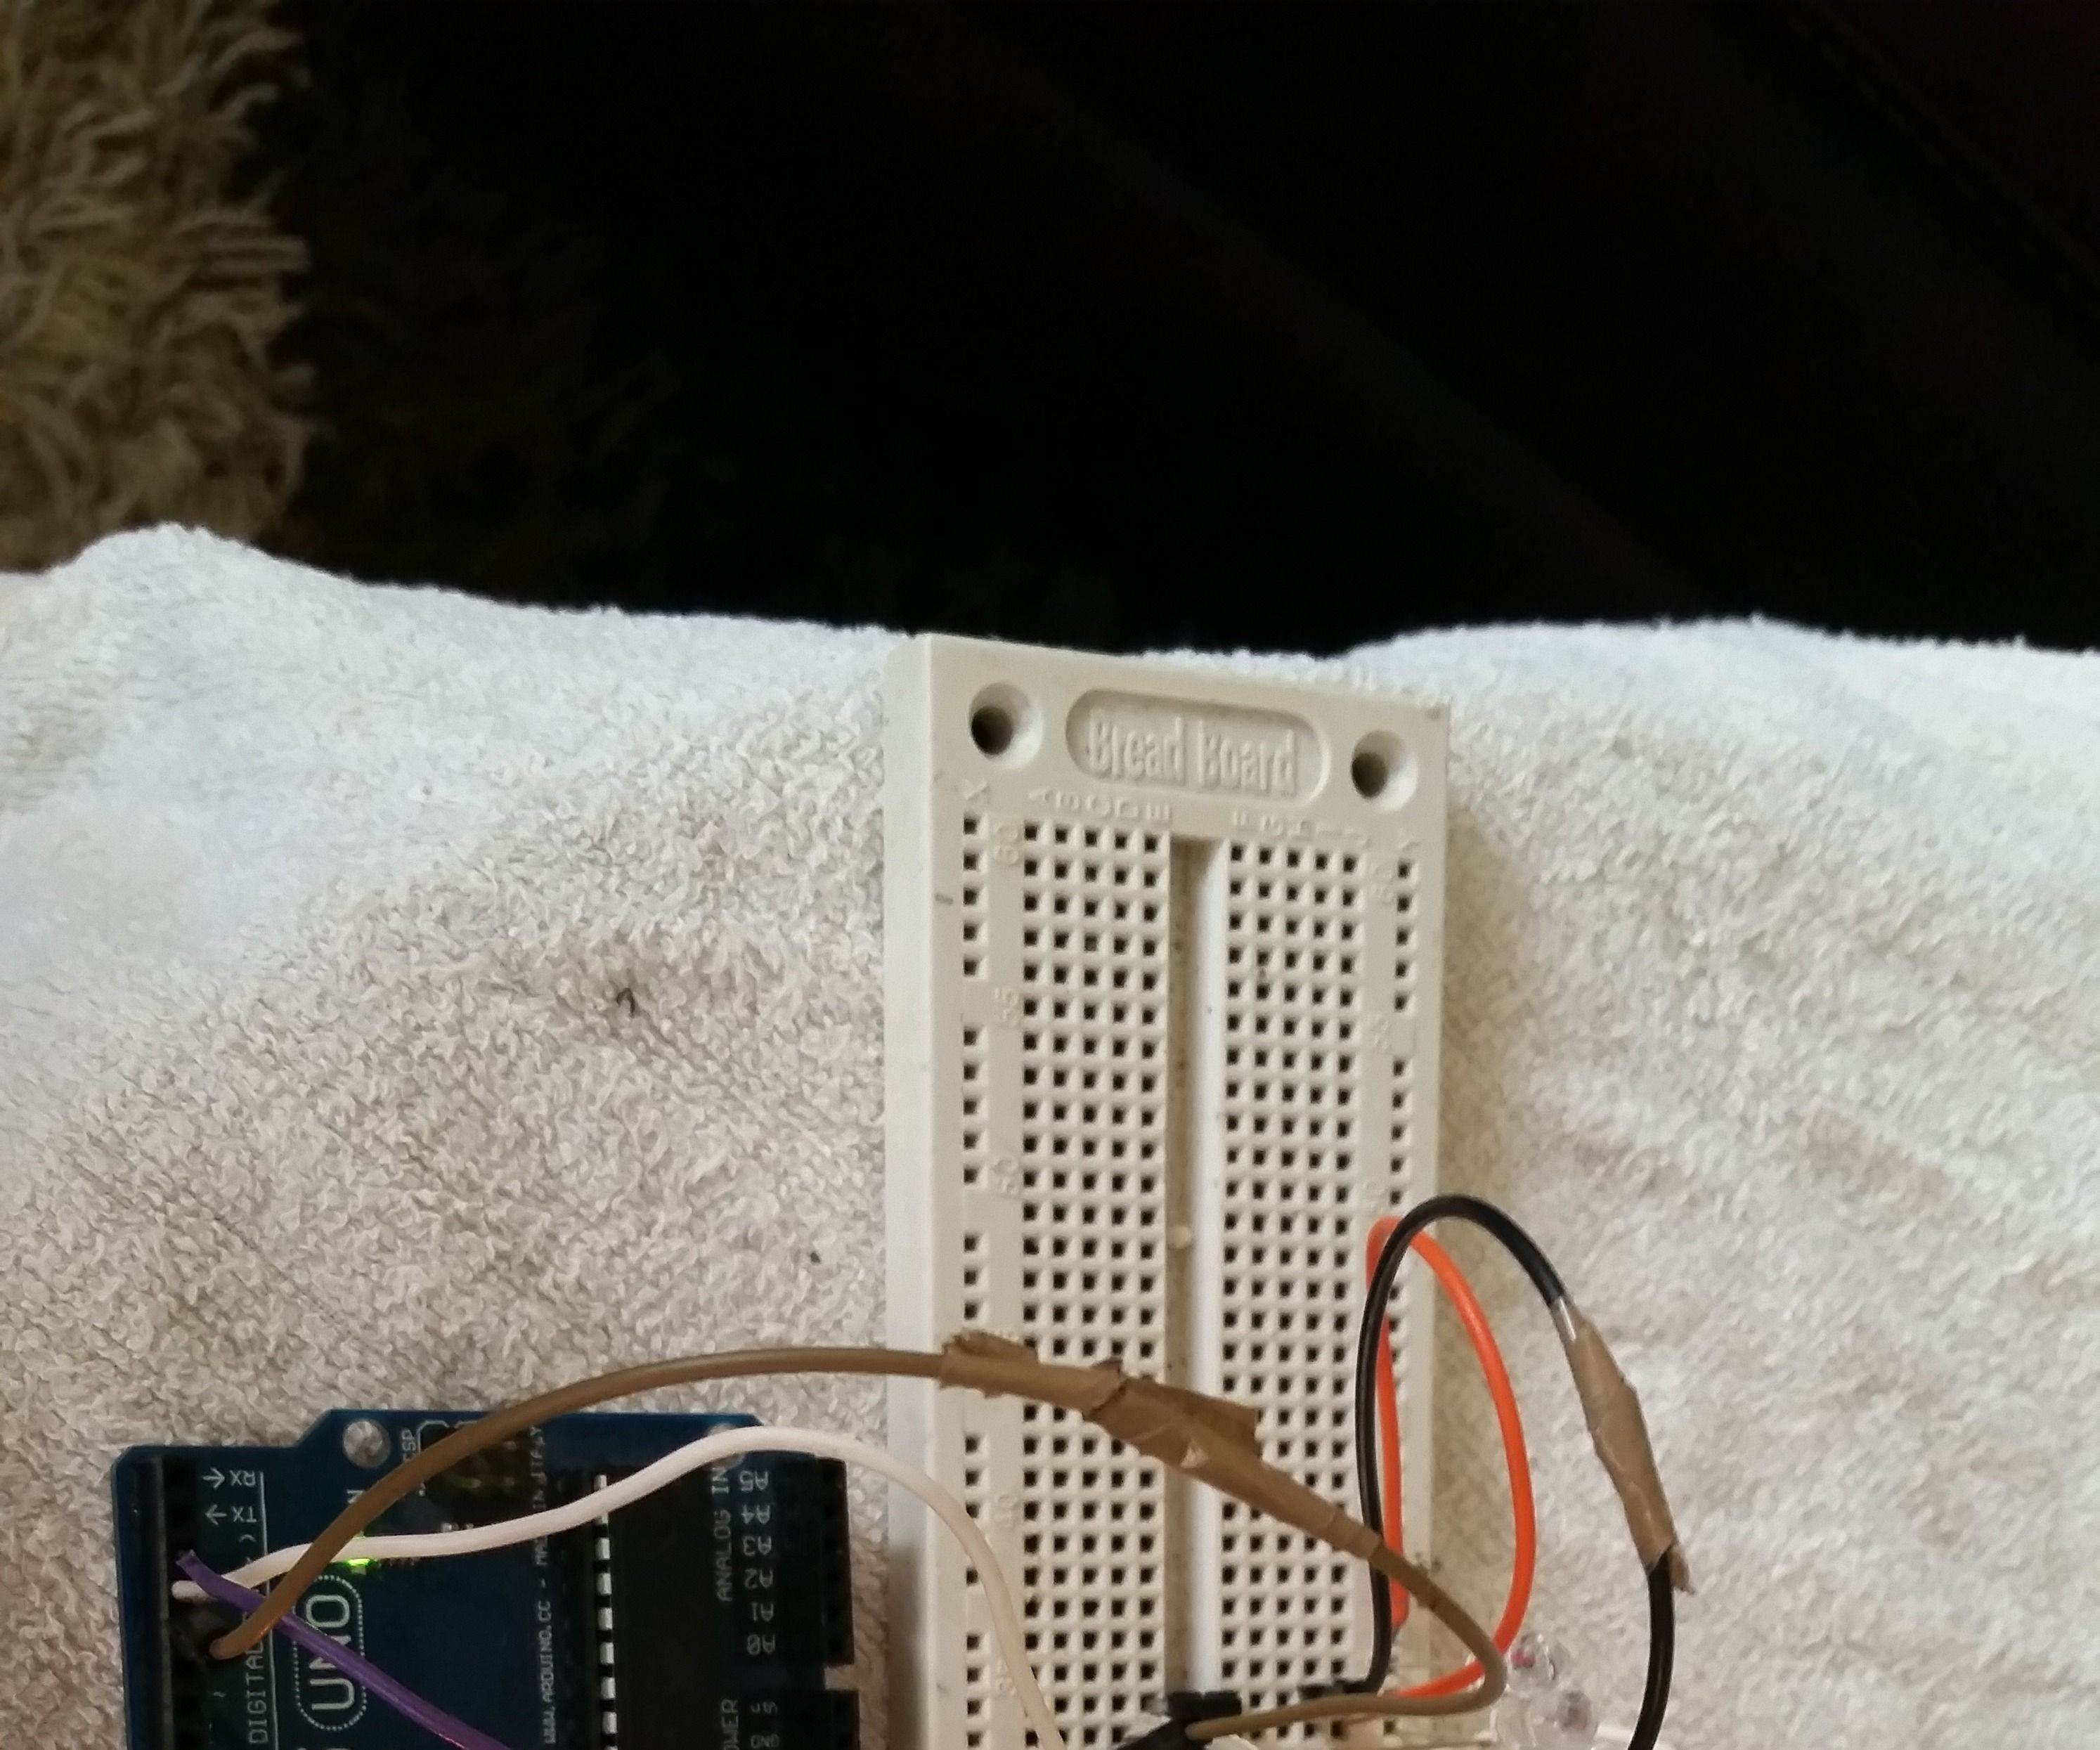 Arduino and shift register